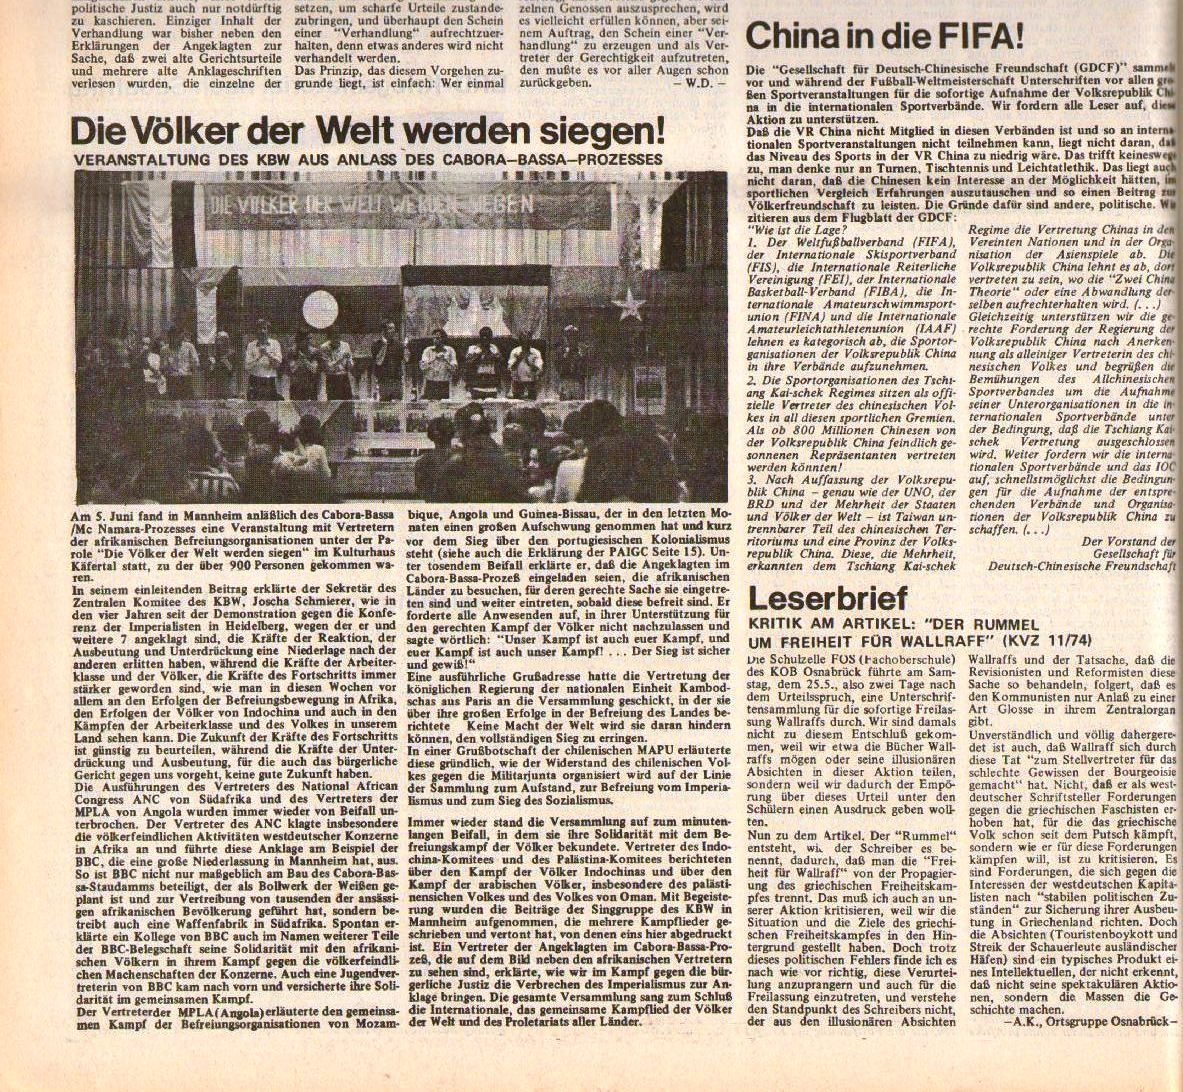 KVZ 12/74: China in die FIFA